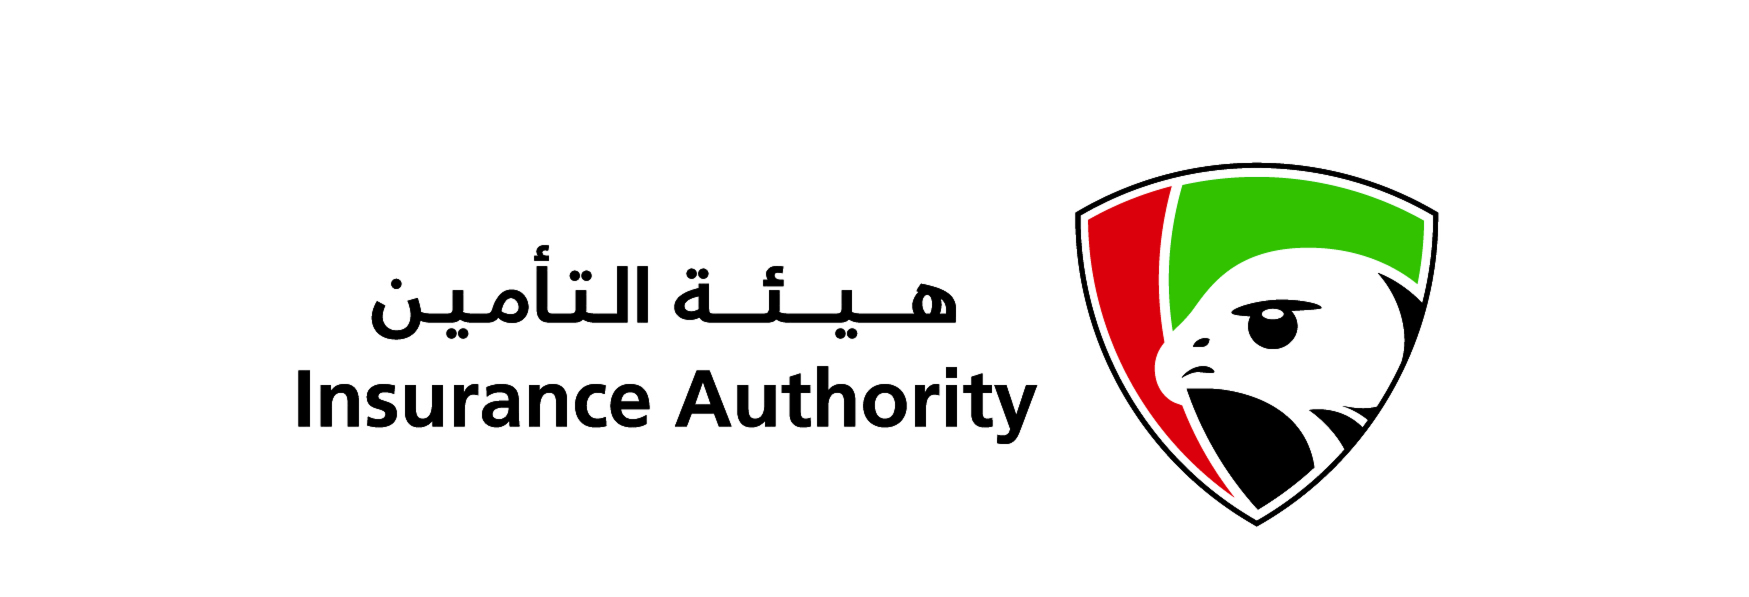 Insurance Authority